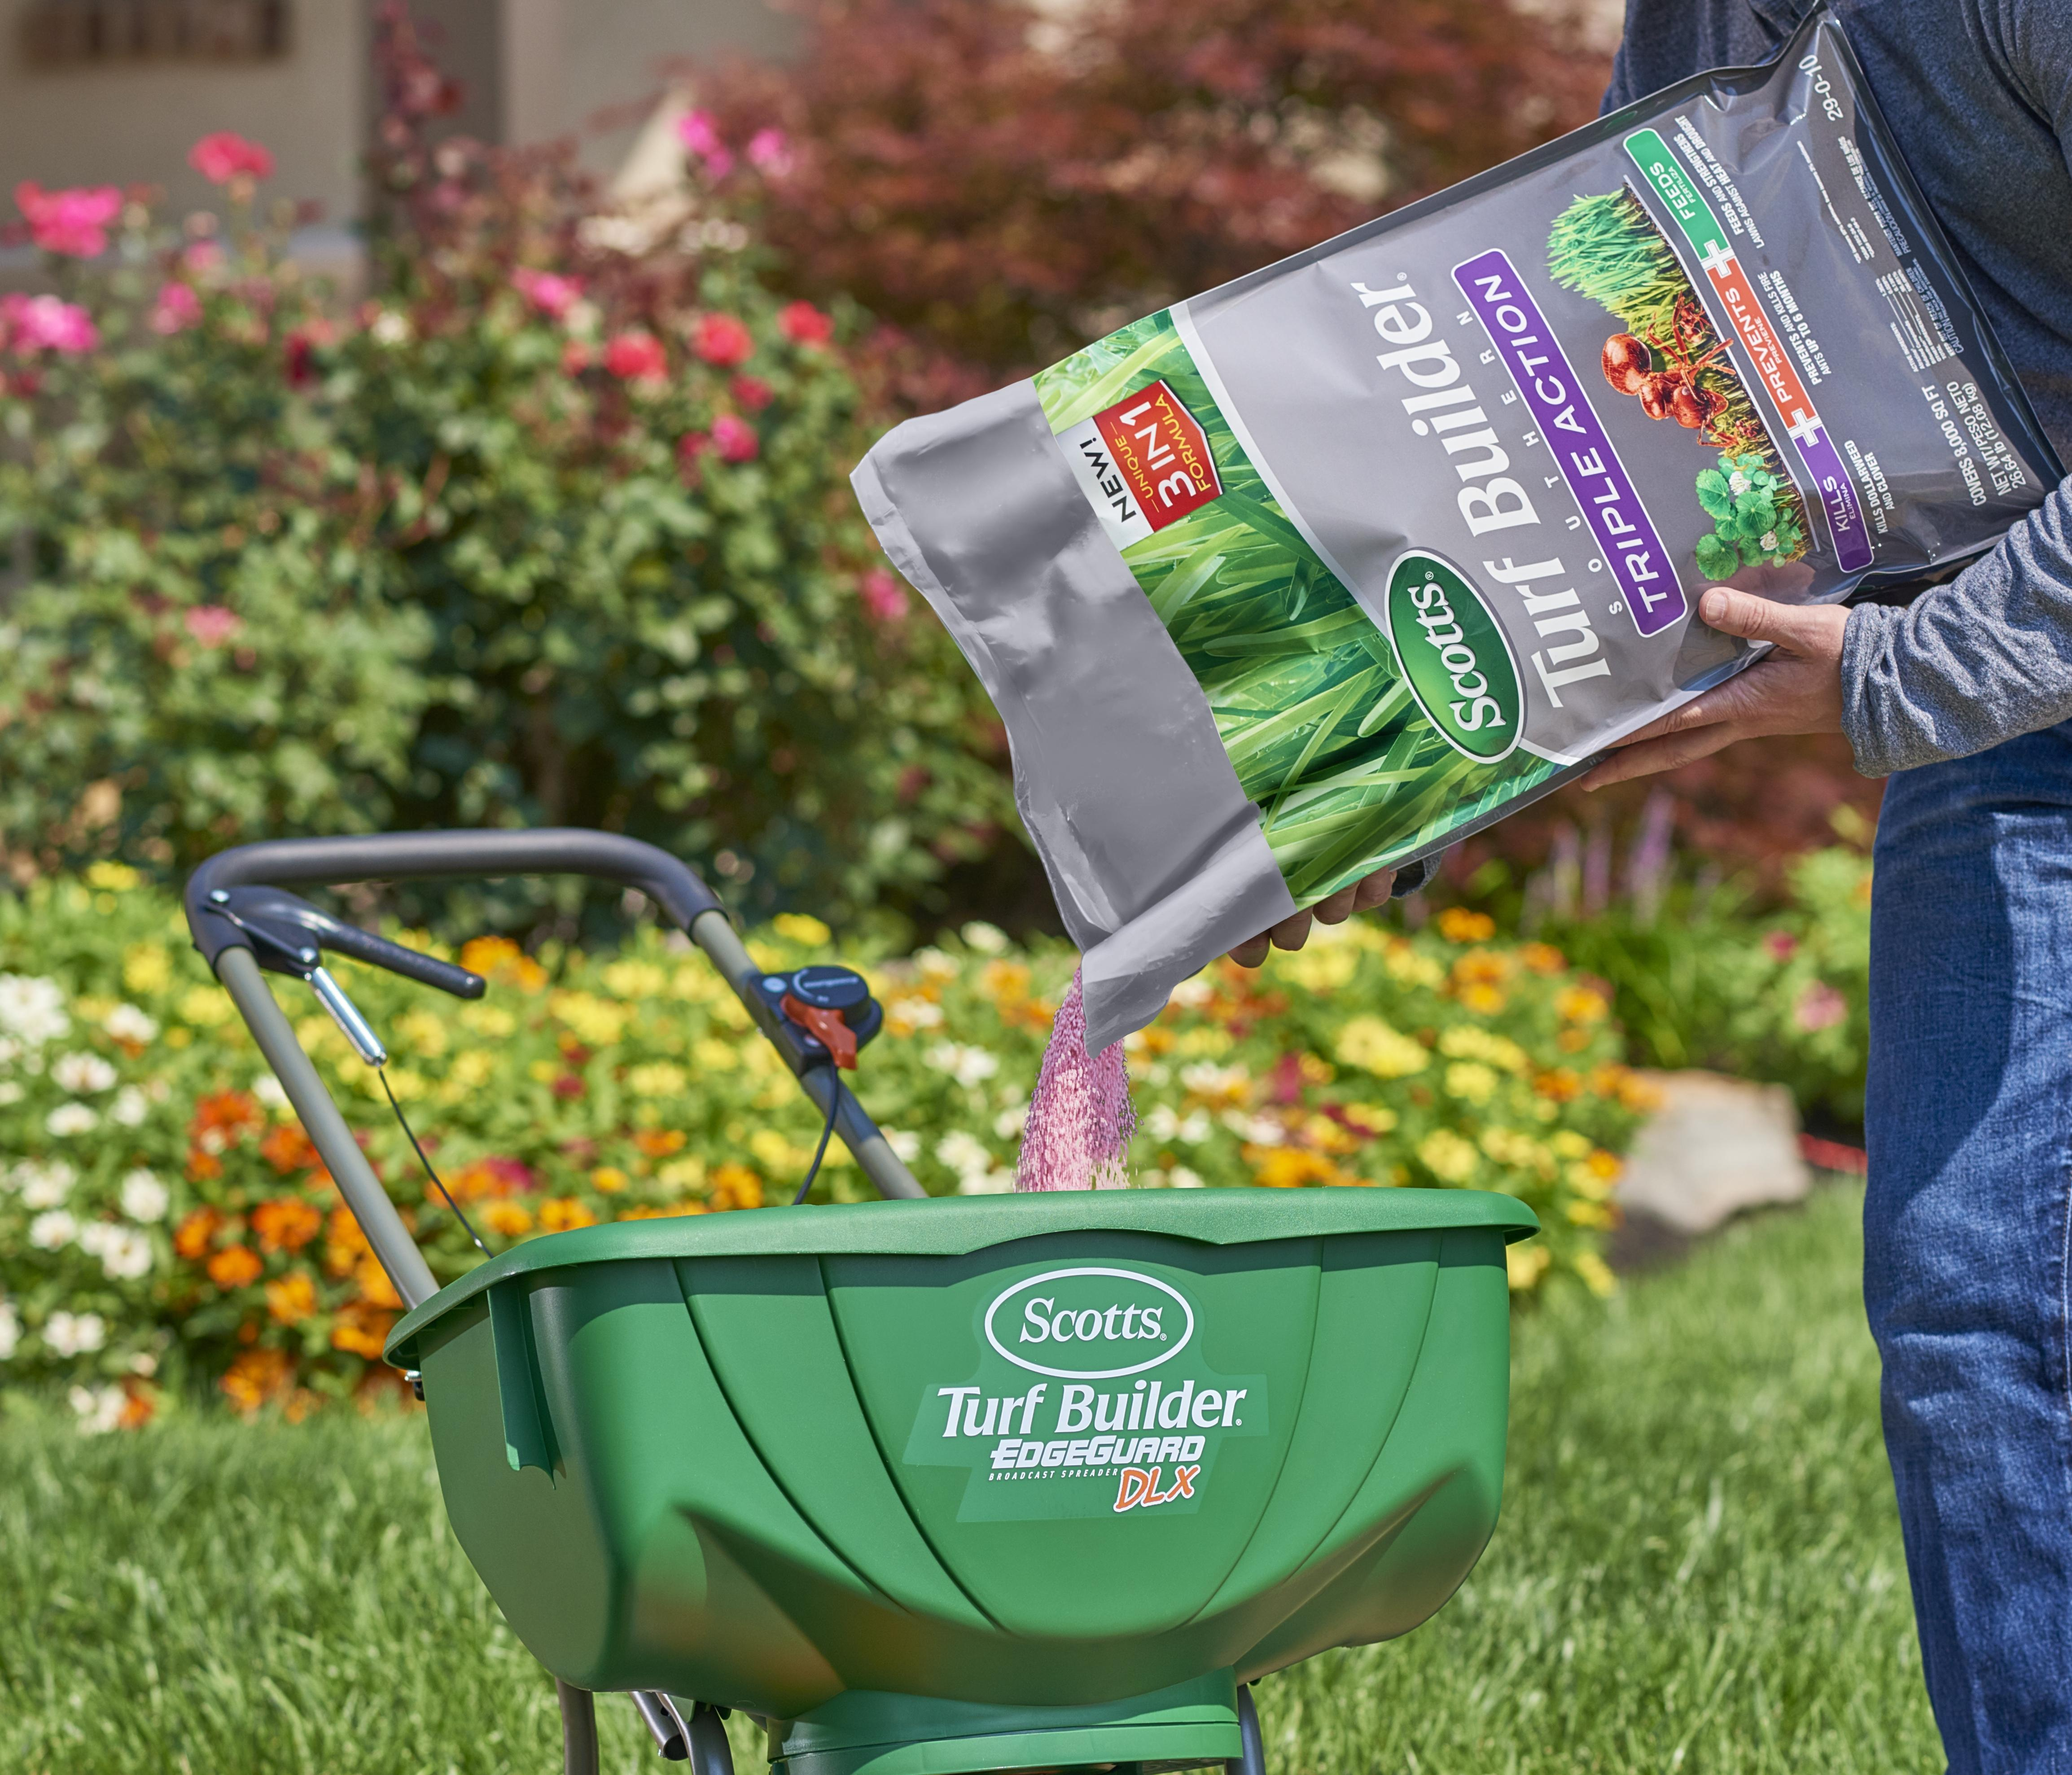 Triple Action South: Weed killer and fertilizer for Southern lawns that kills fire ants